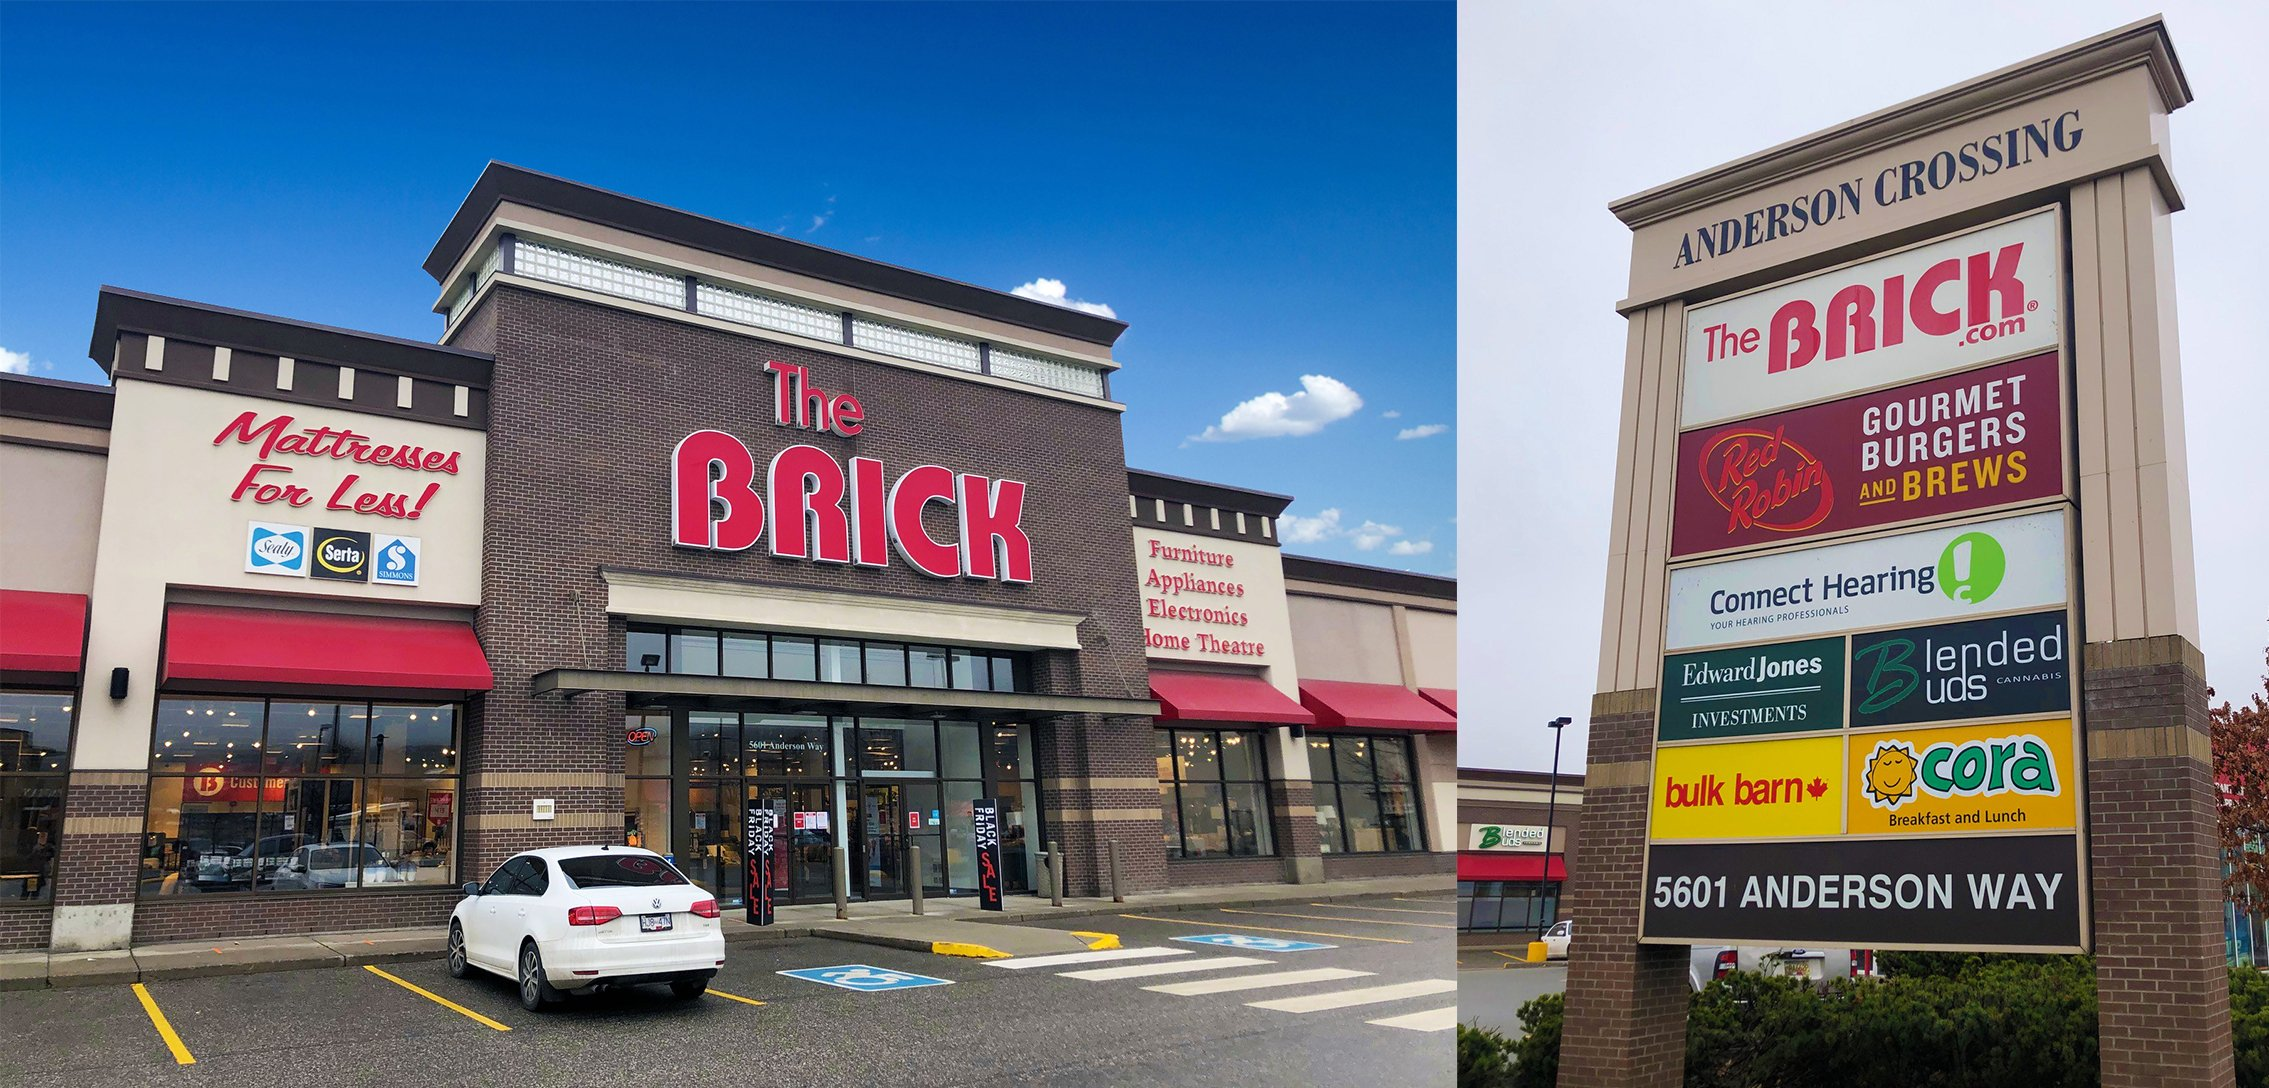 5601 Anderson Way, Vernon, BC - Income Producing Retail Shopping Centre